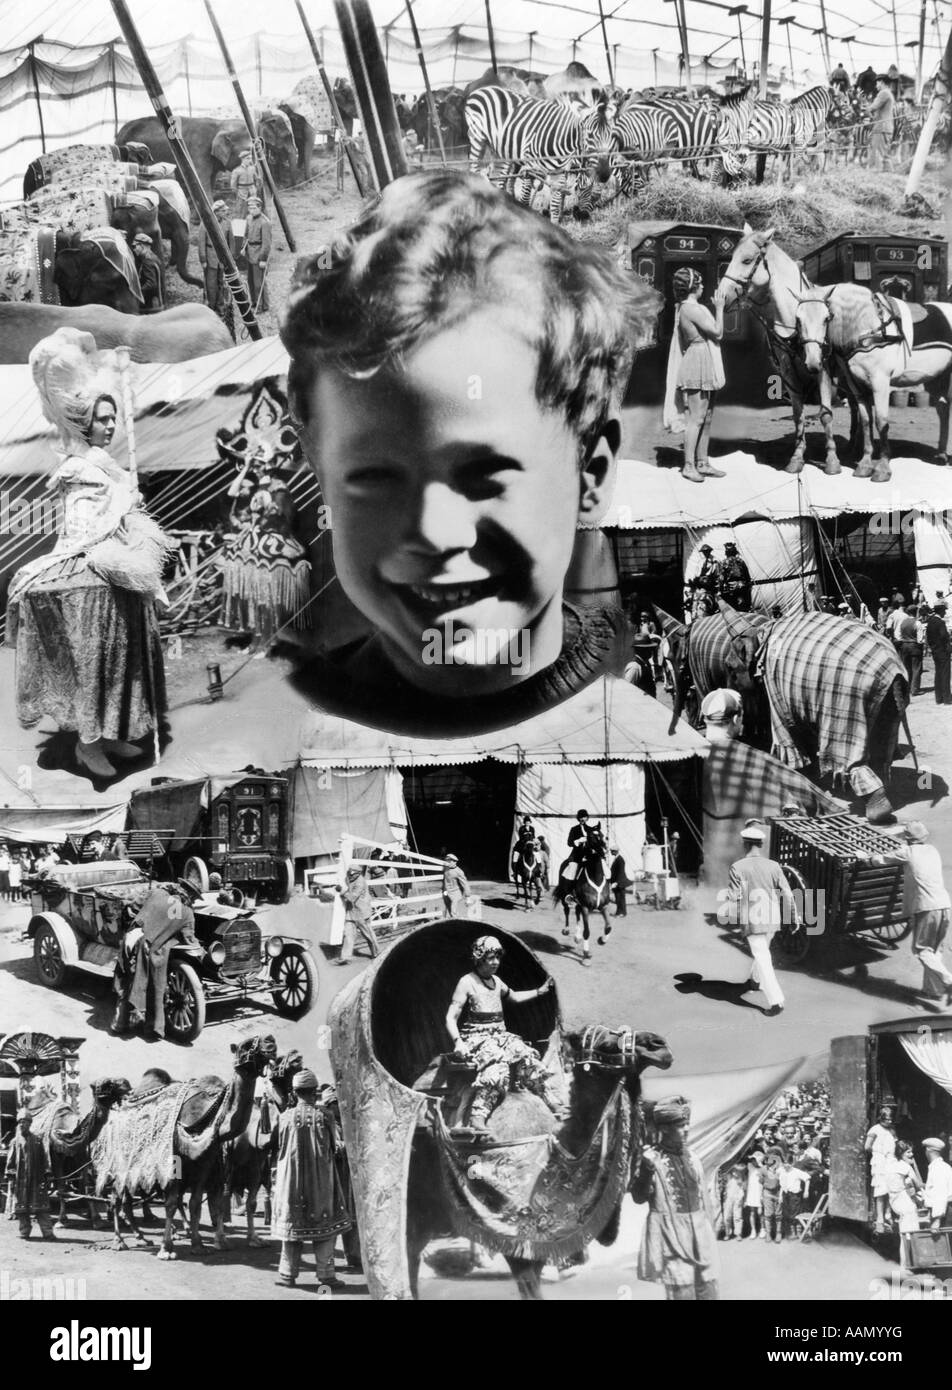 1930s MONTAGE OF CIRCUS IMAGES AROUND SMILING FACE OF BOY - Stock Image